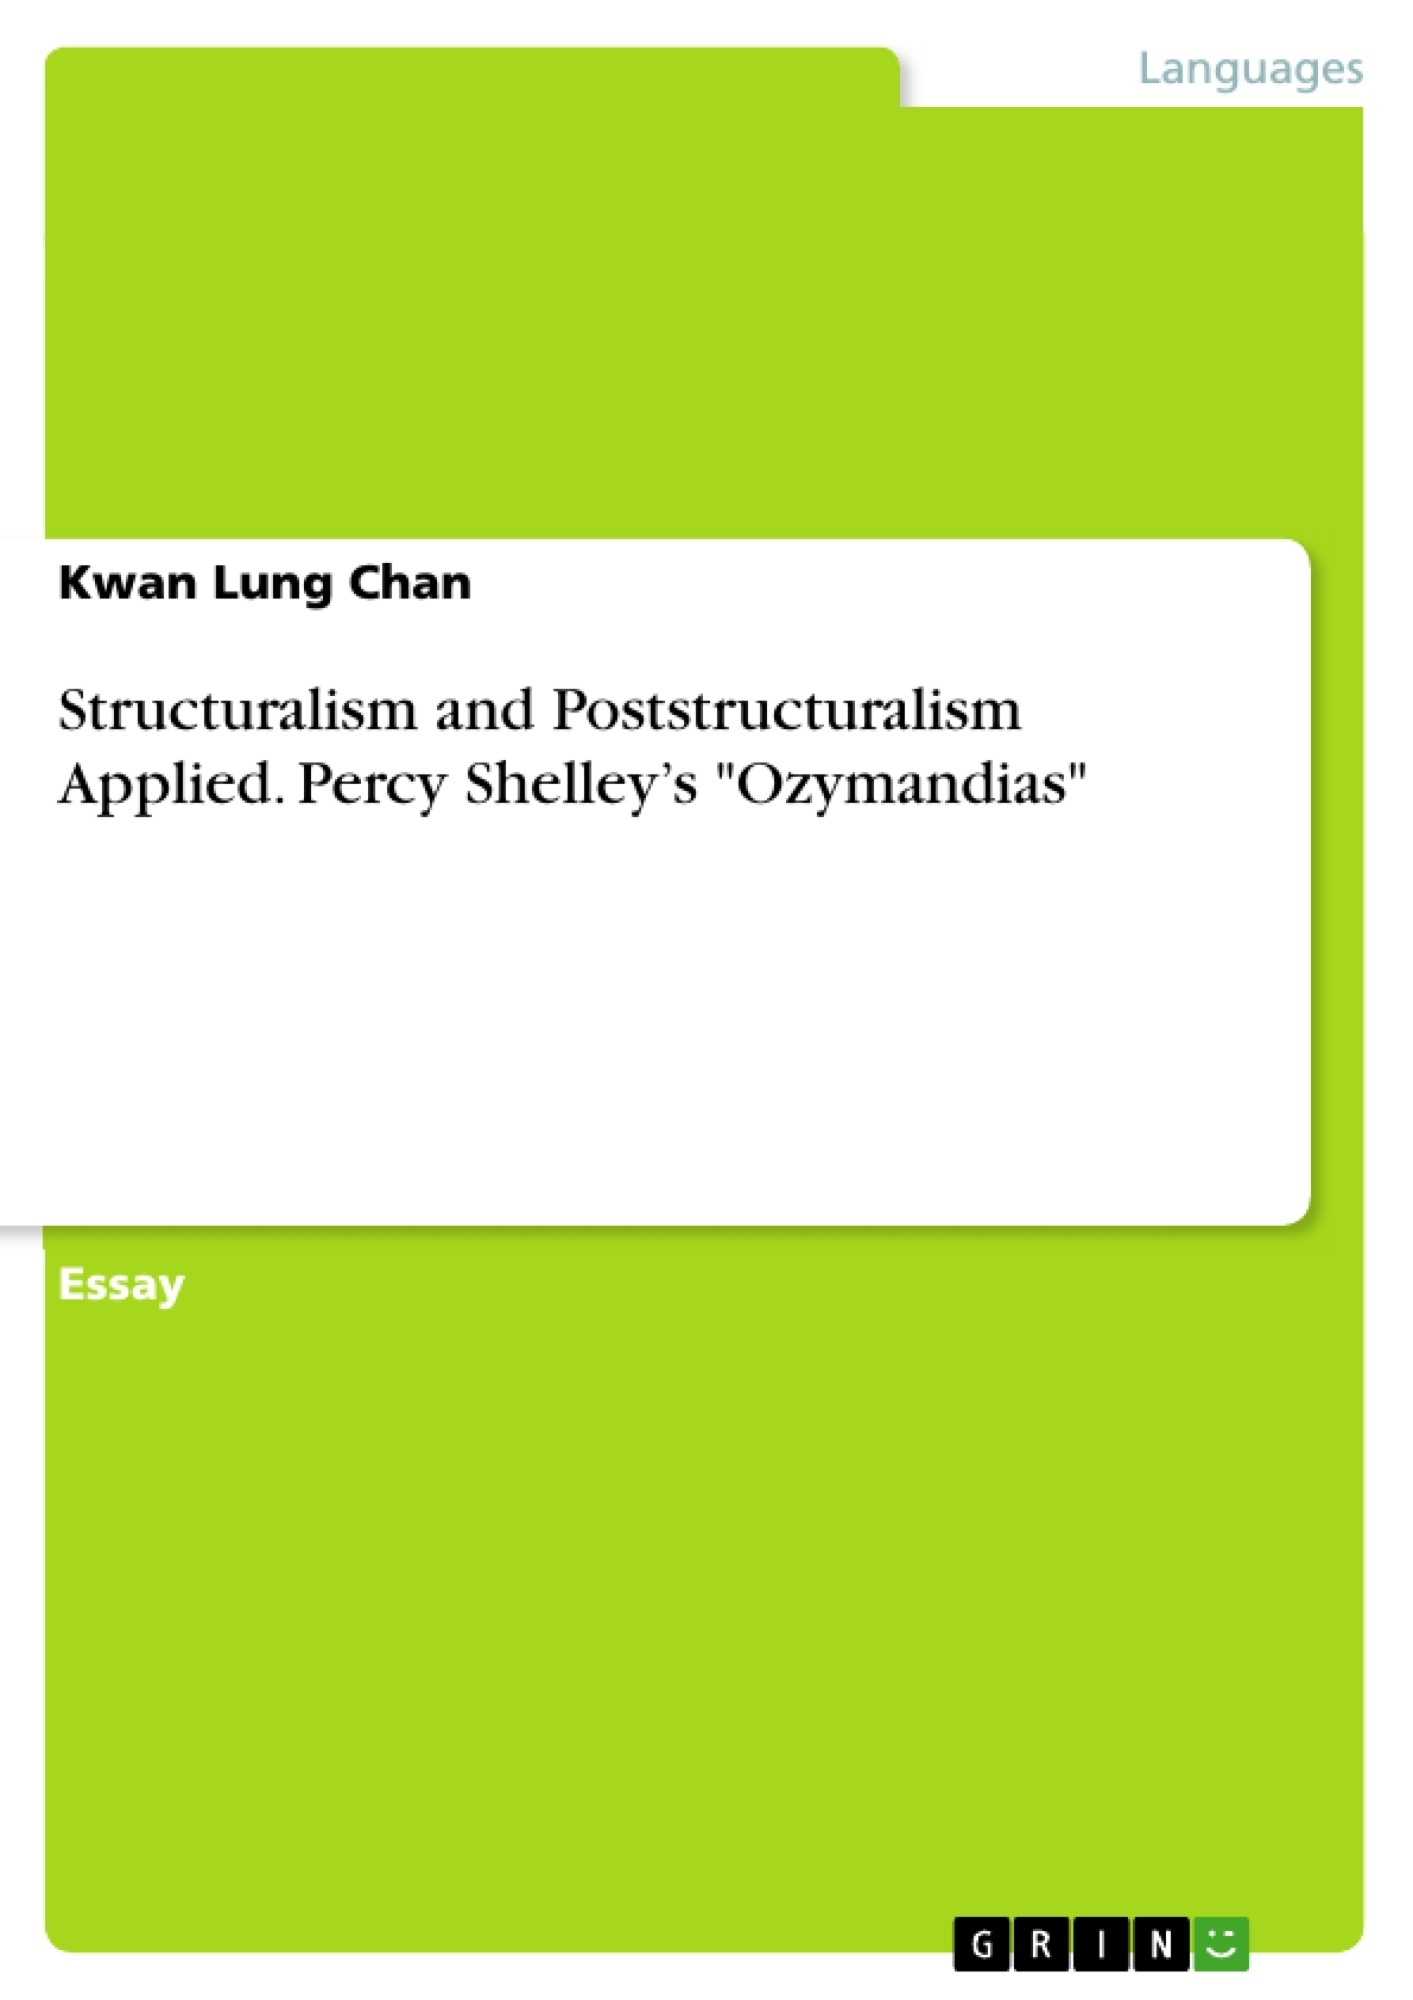 """Title: Structuralism and Poststructuralism Applied. Percy Shelley's """"Ozymandias"""""""